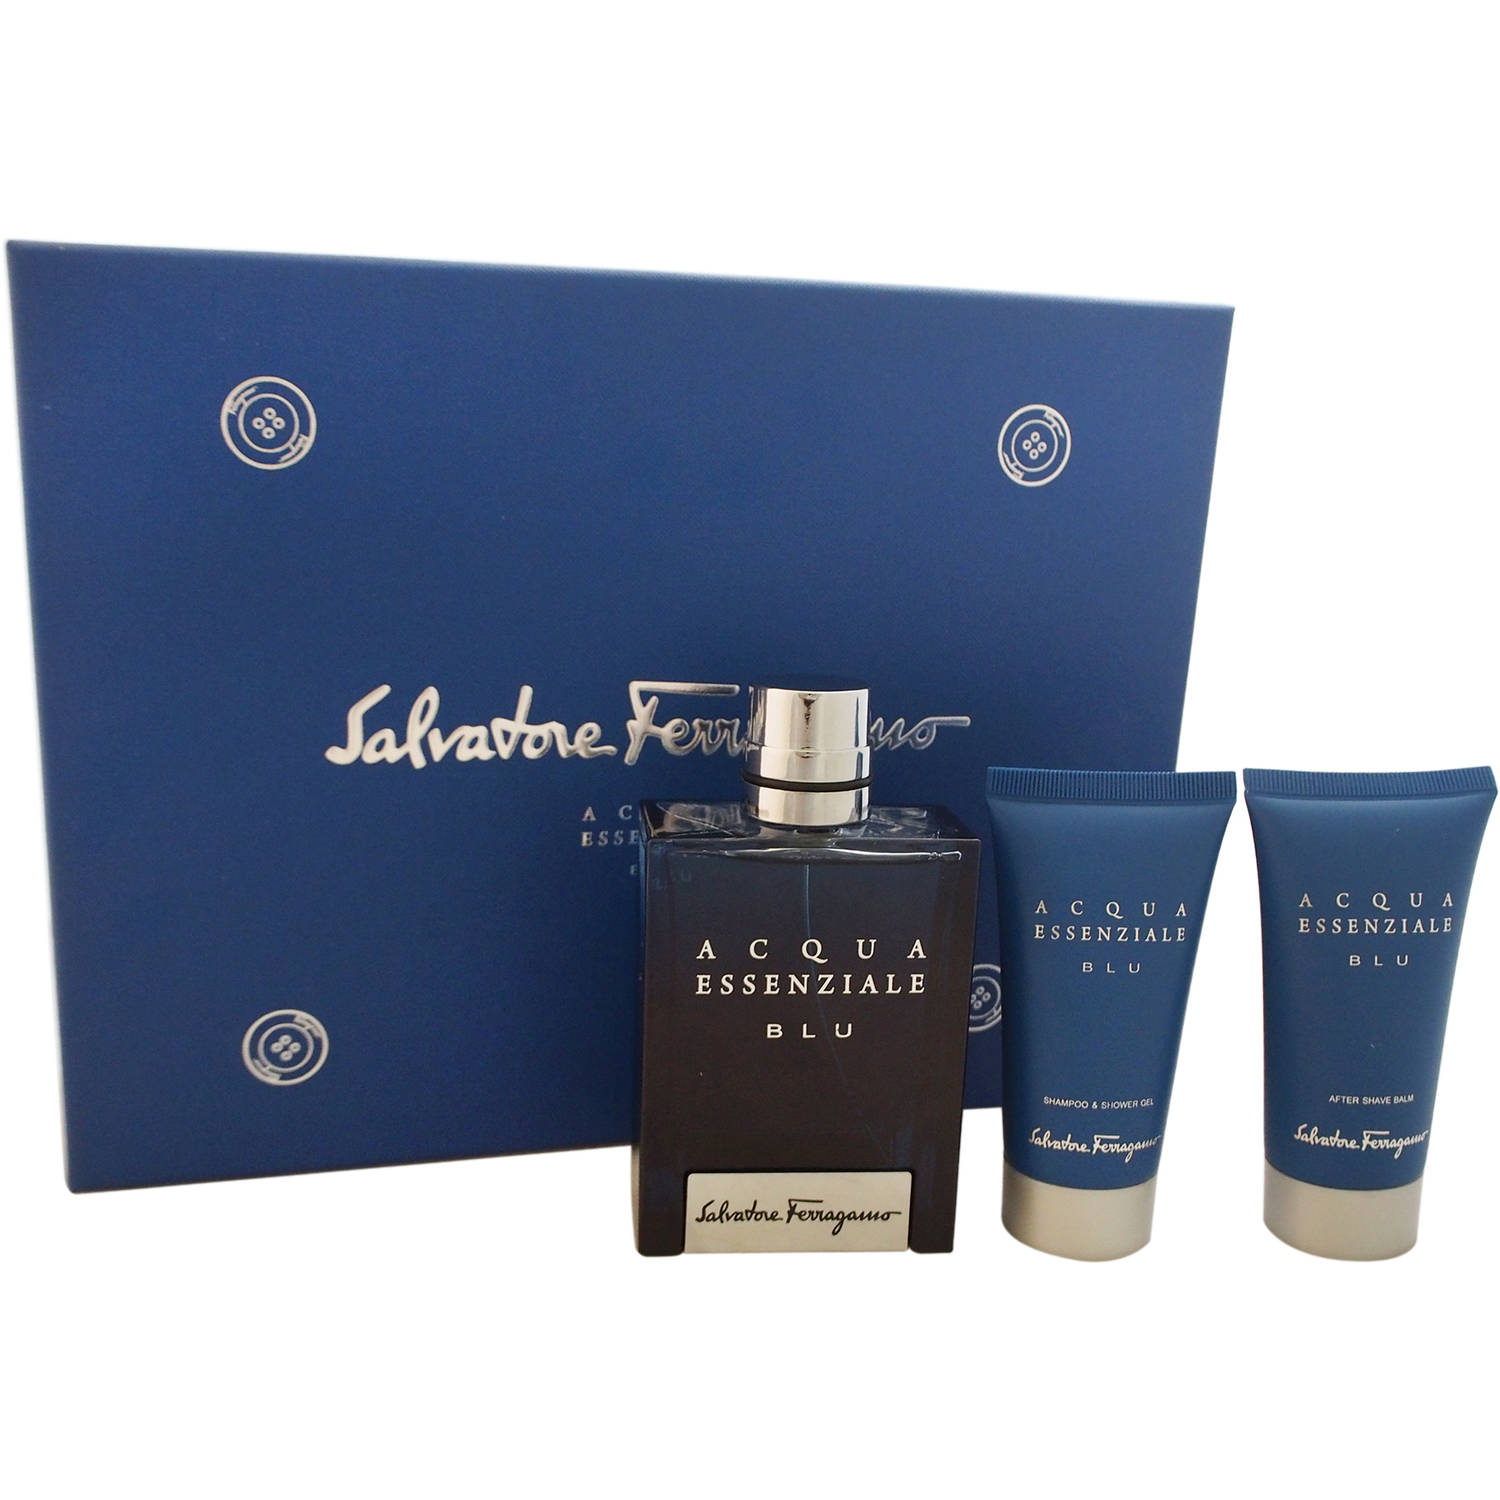 Acqua Essenziale Blu by Salvatore Ferragamo for Men - 3 Pc Gift Set 3.4oz EDT Spray, 1.7oz Shampoo And Shower Gel, 1.7oz After Shave Balm